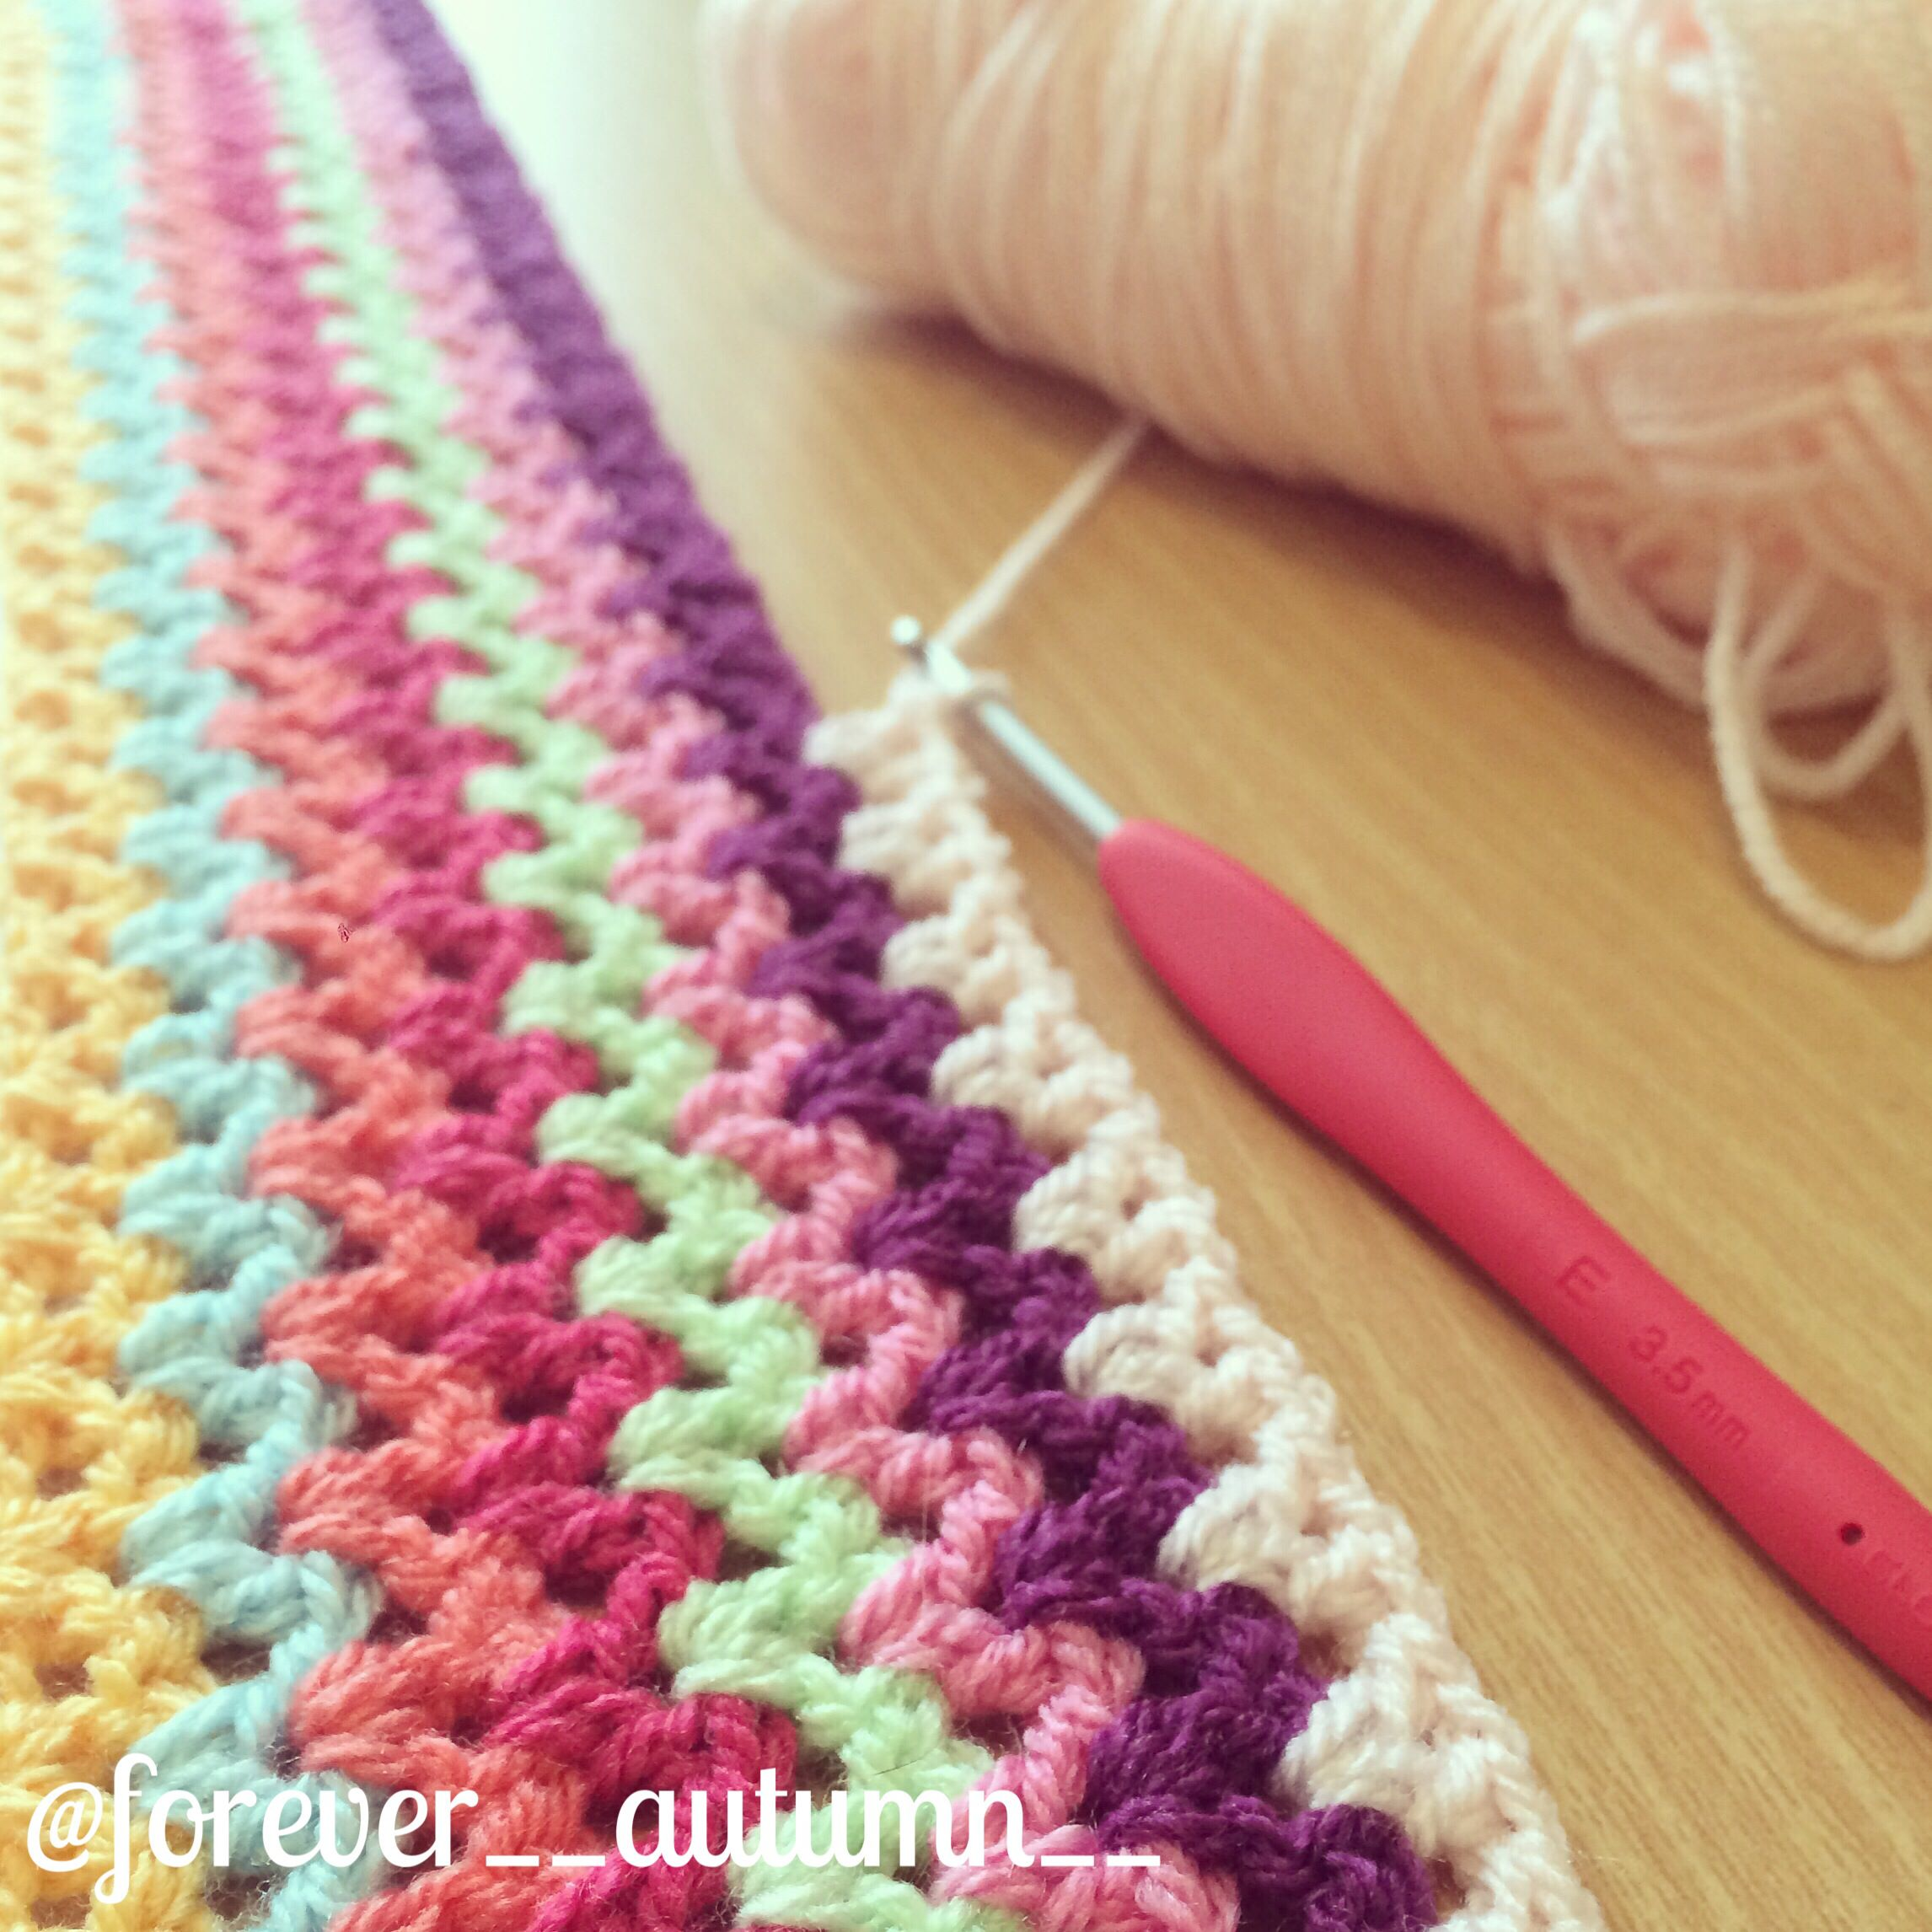 V-stitch blanket in the making @forever__autumn__ | Crochet Patterns ...